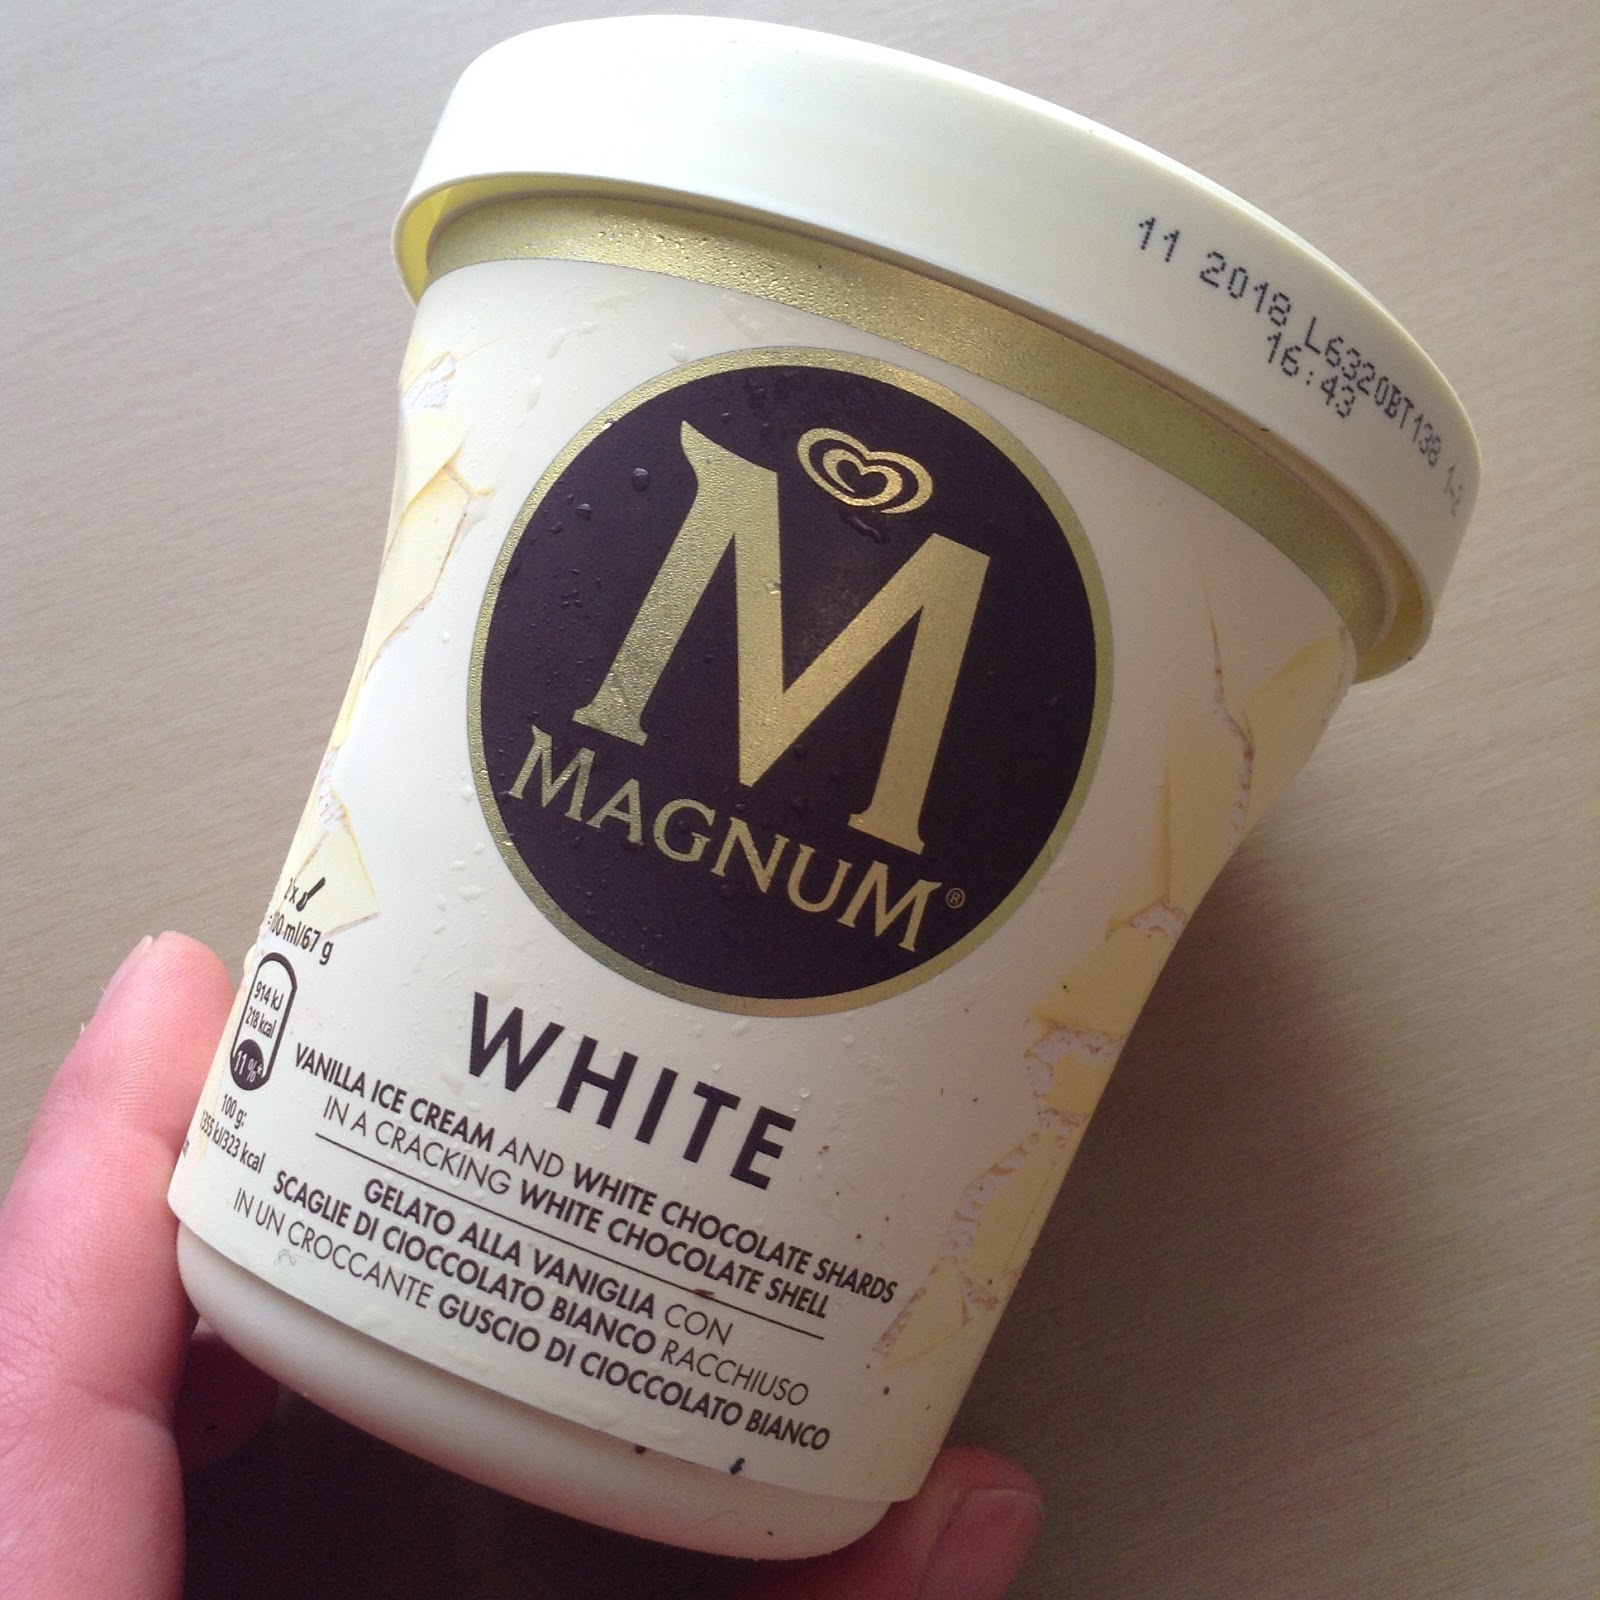 Magnum Tub White Chocolate Ice Cream